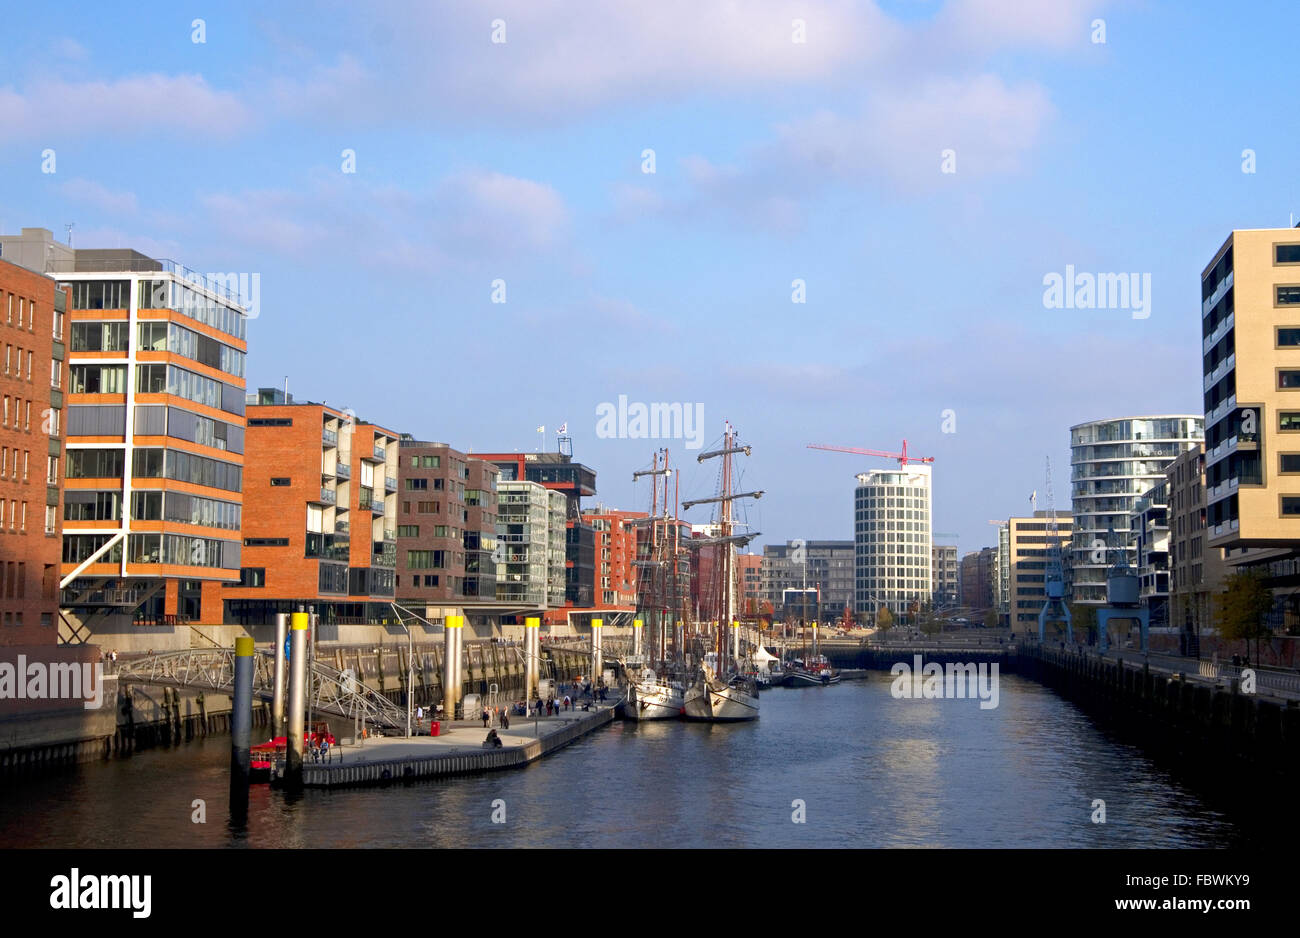 ships and boats in hamburg hafen city - Stock Image